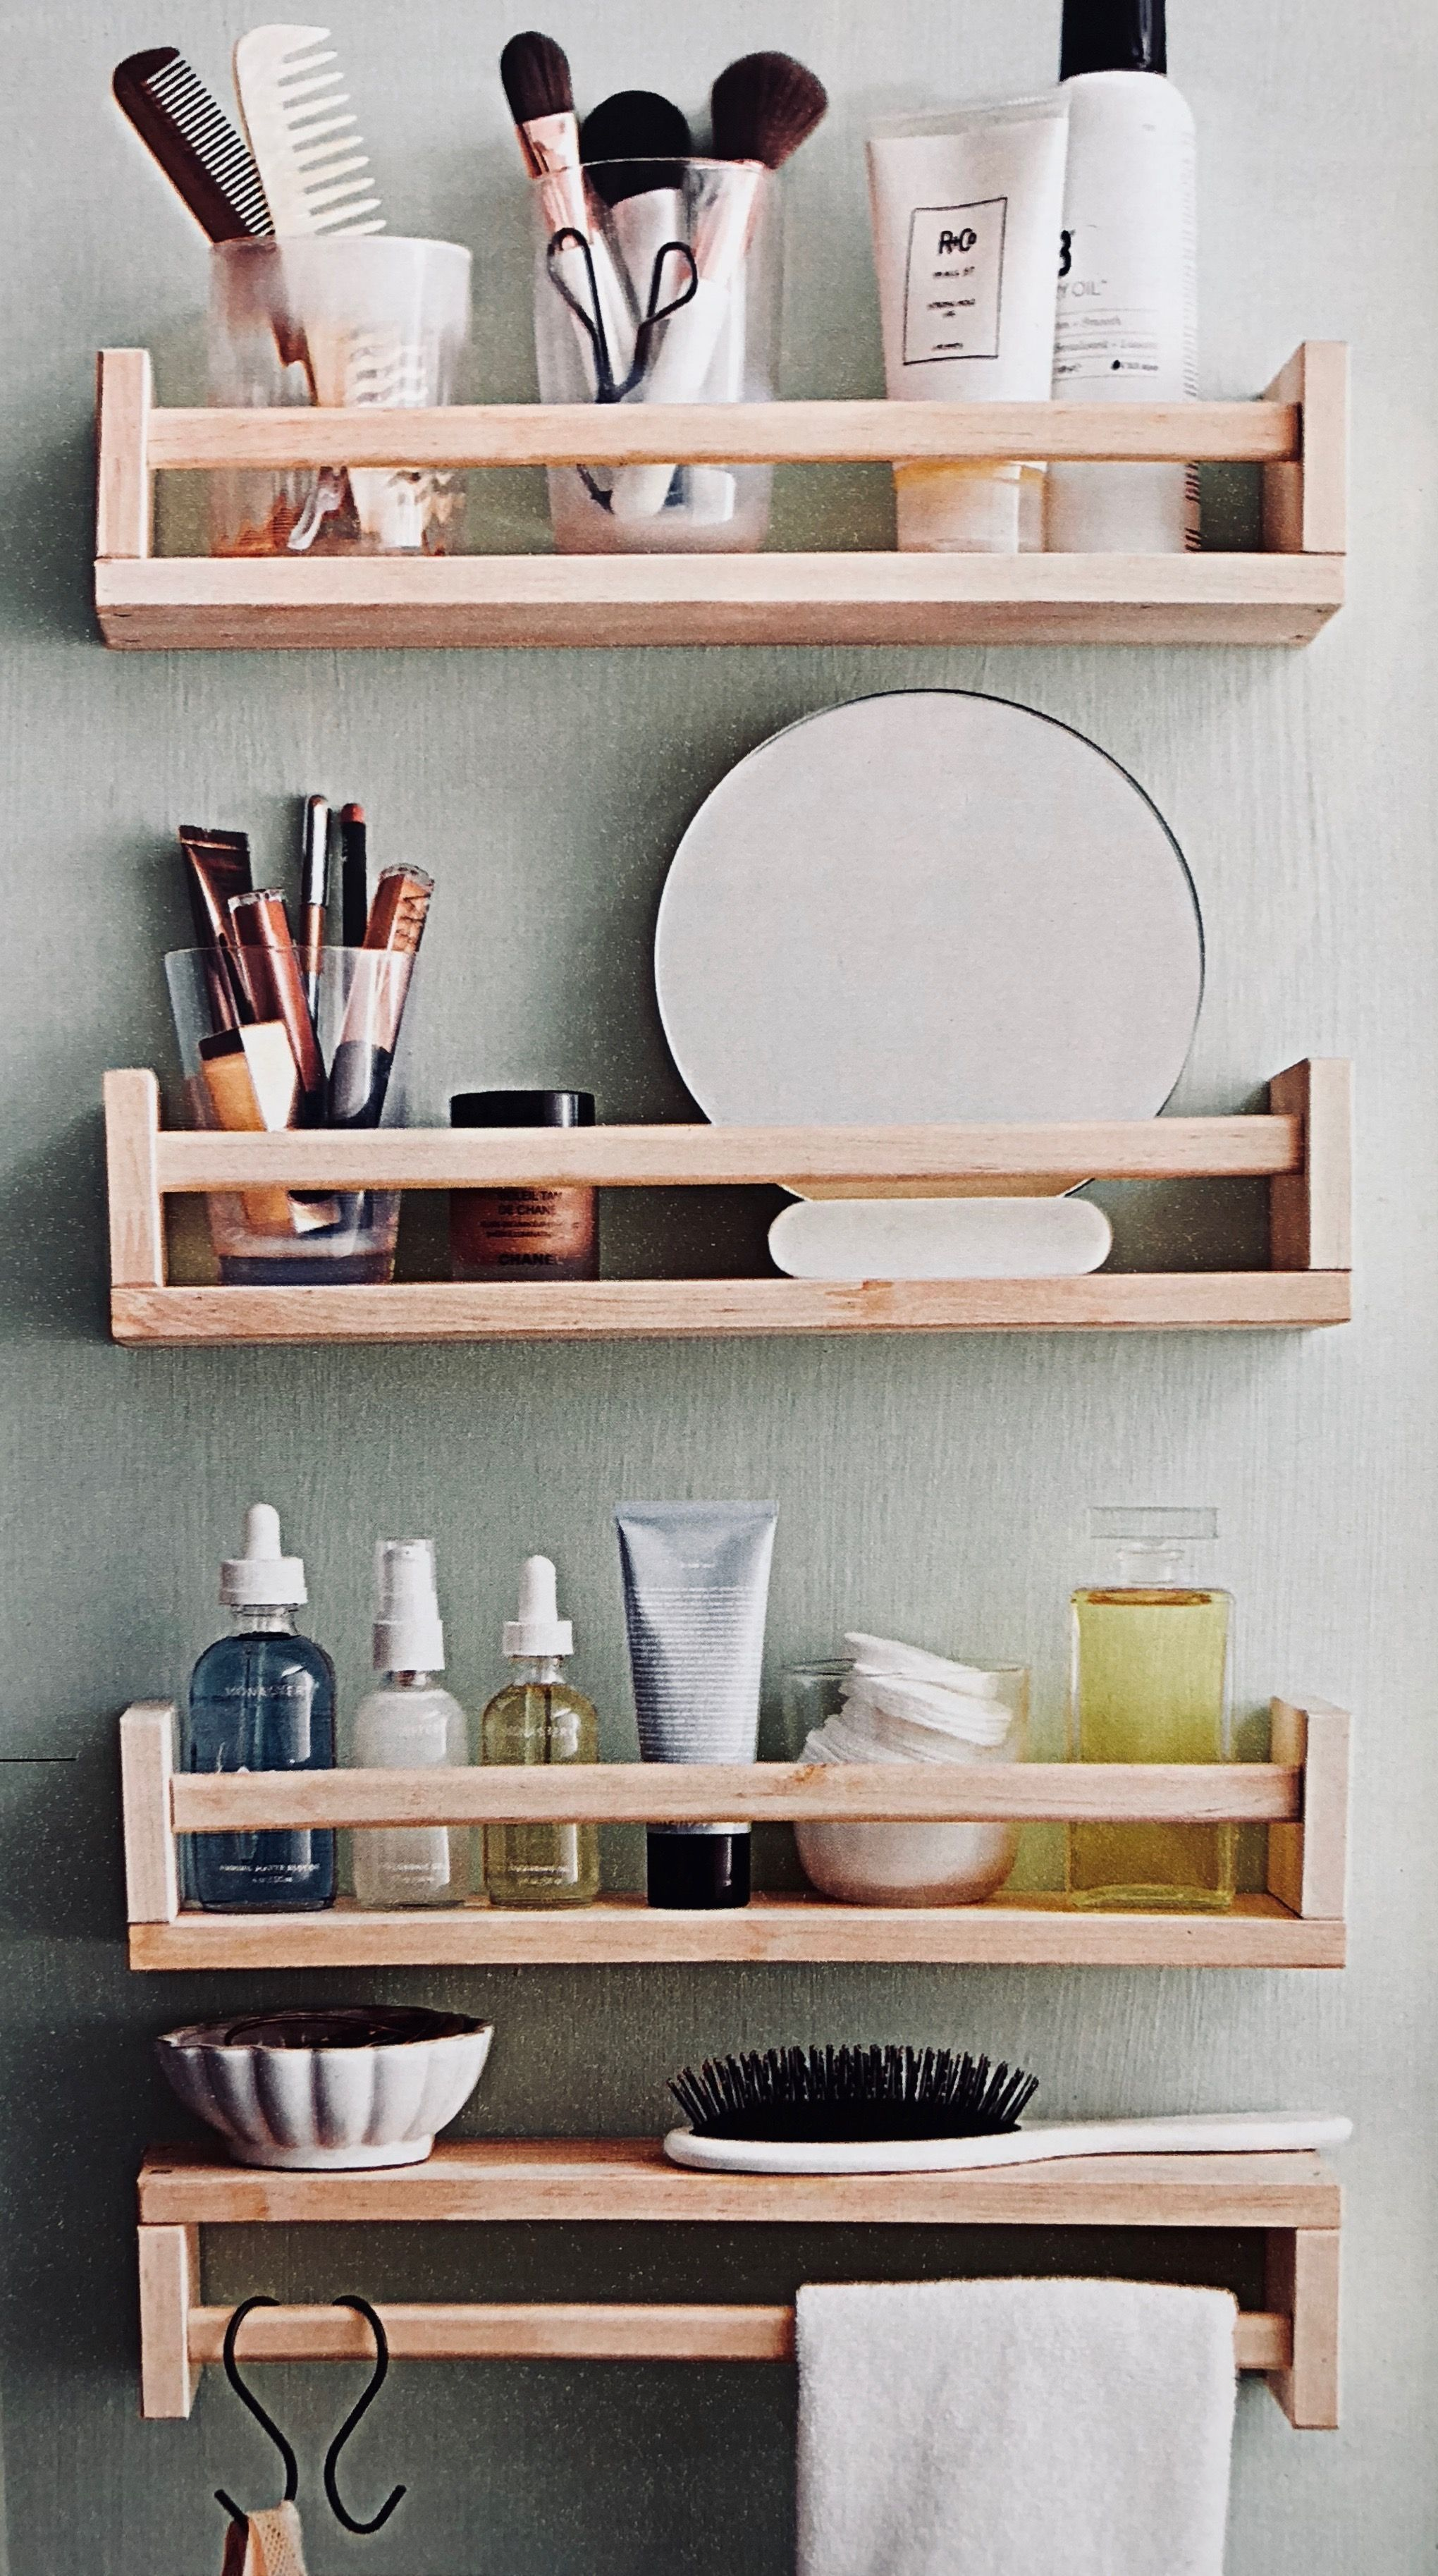 47 Charming Diy Bathroom Storage Ideas For Small Spaces images